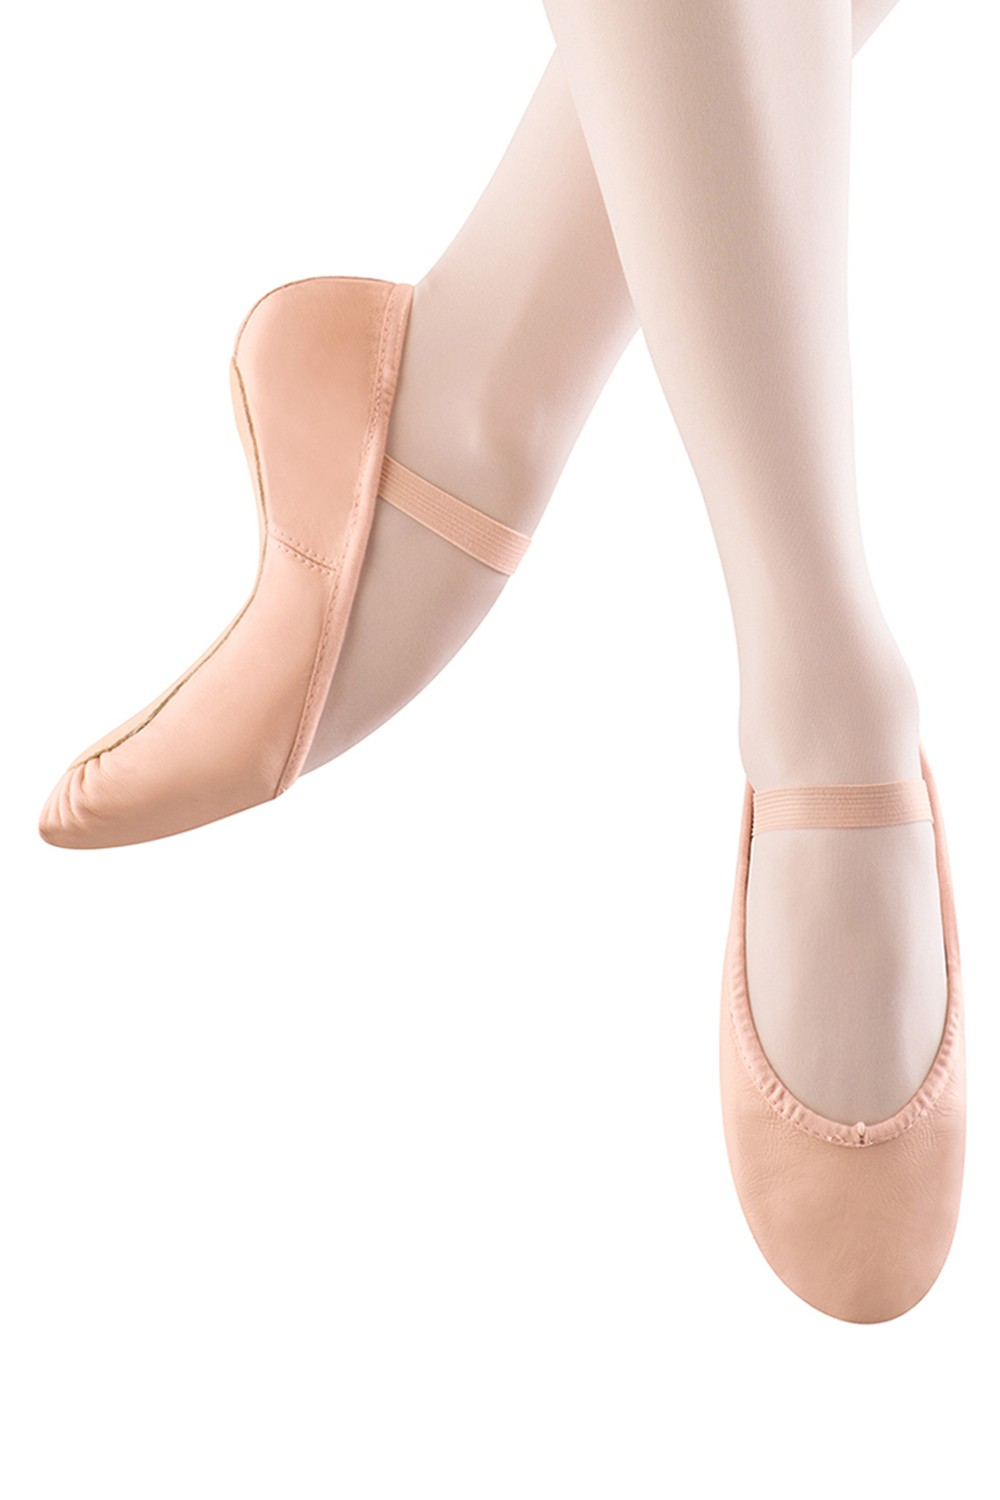 Dansoft - Kids Girl's Ballet Shoes